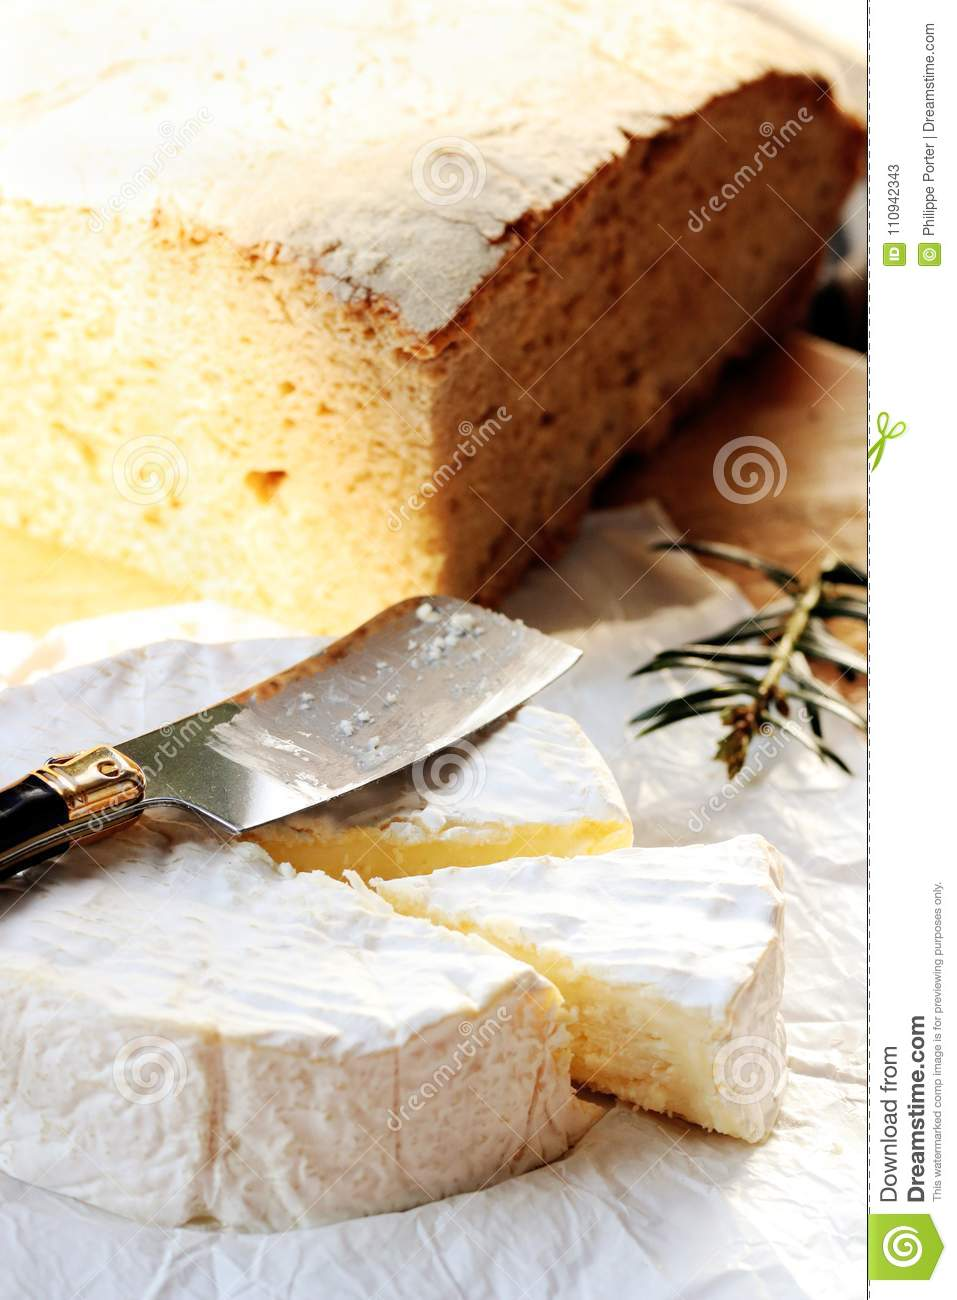 camembert french cheese normandy france stock image image of made rh dreamstime com